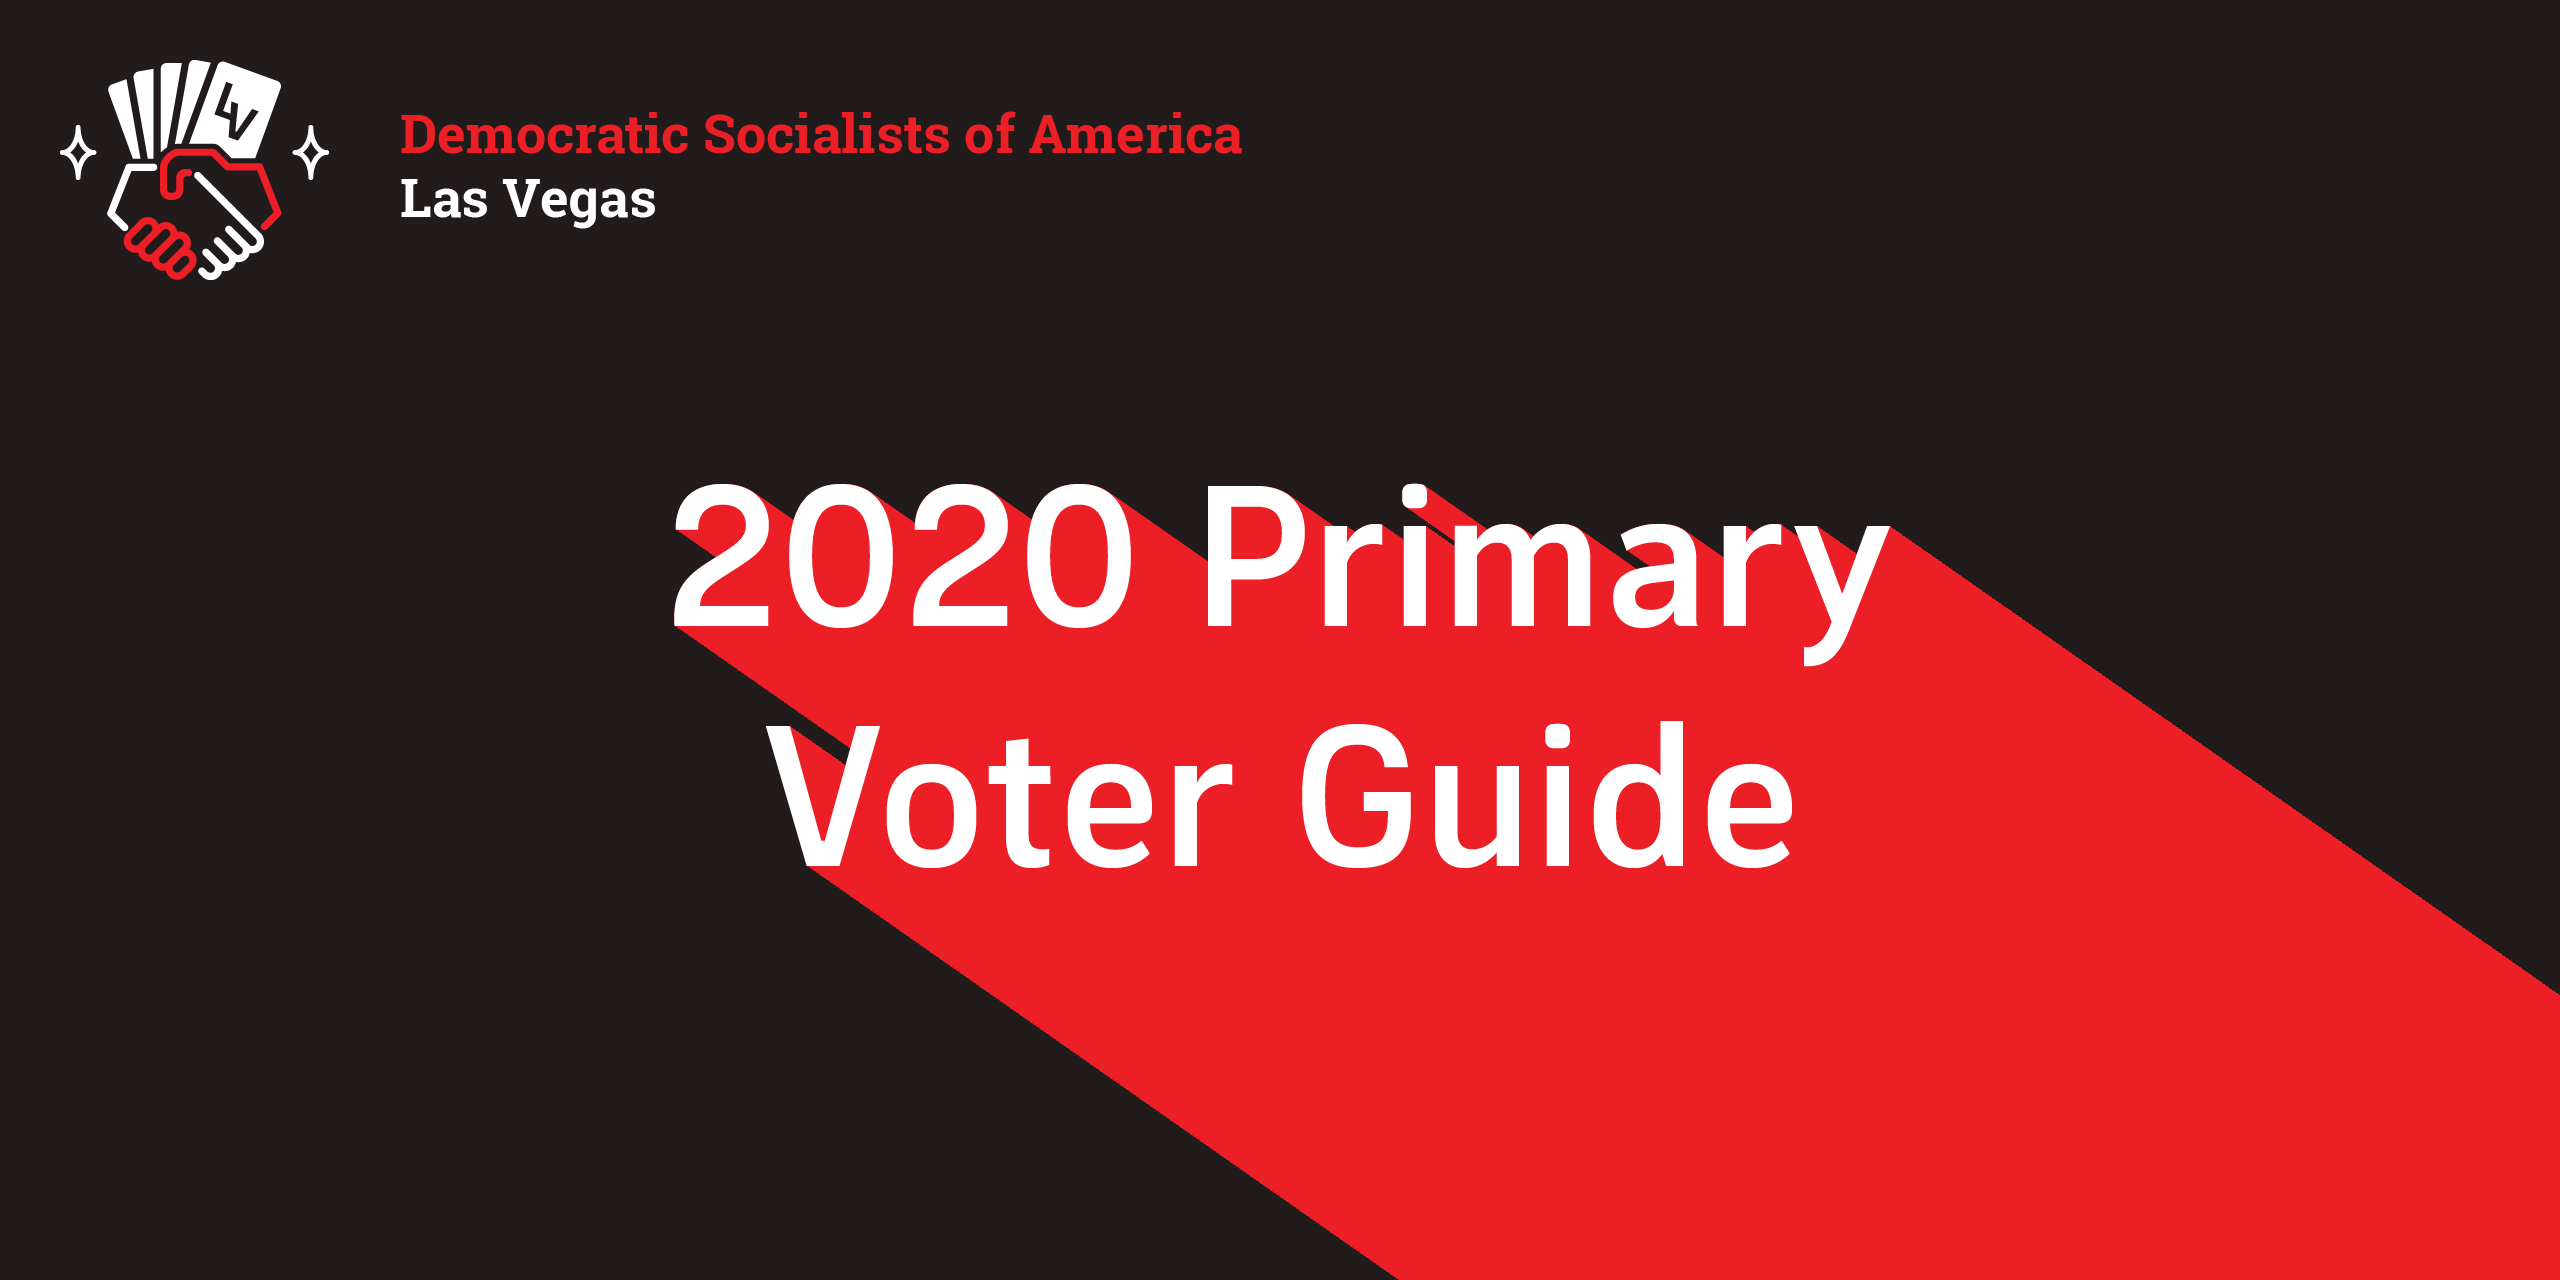 Las Vegas DSA - 2020 Primary Voter Guide